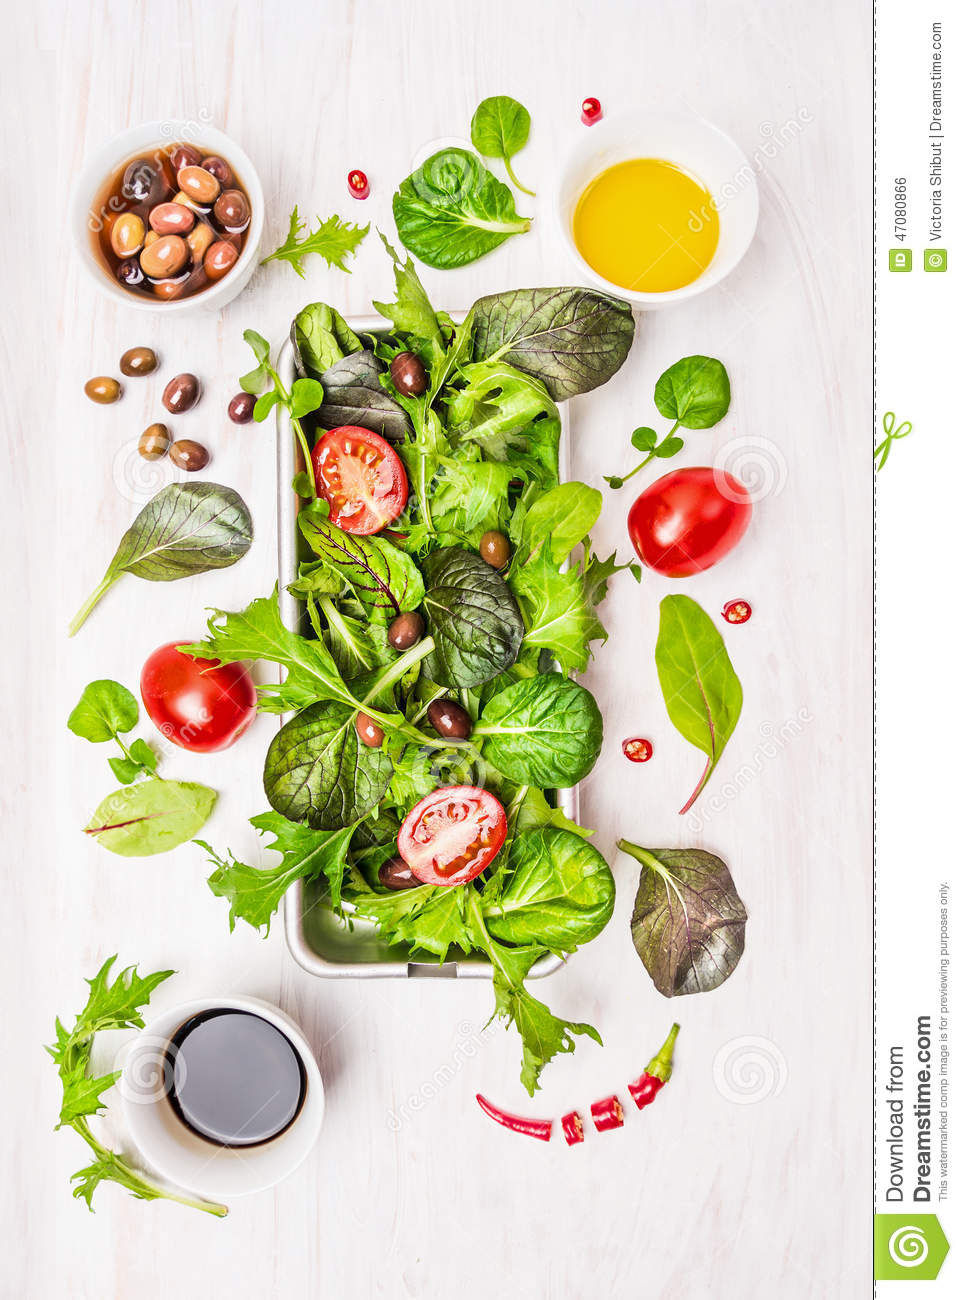 Wild herbs salad with tomatoes,olives,oil and vinegar on white wooden background